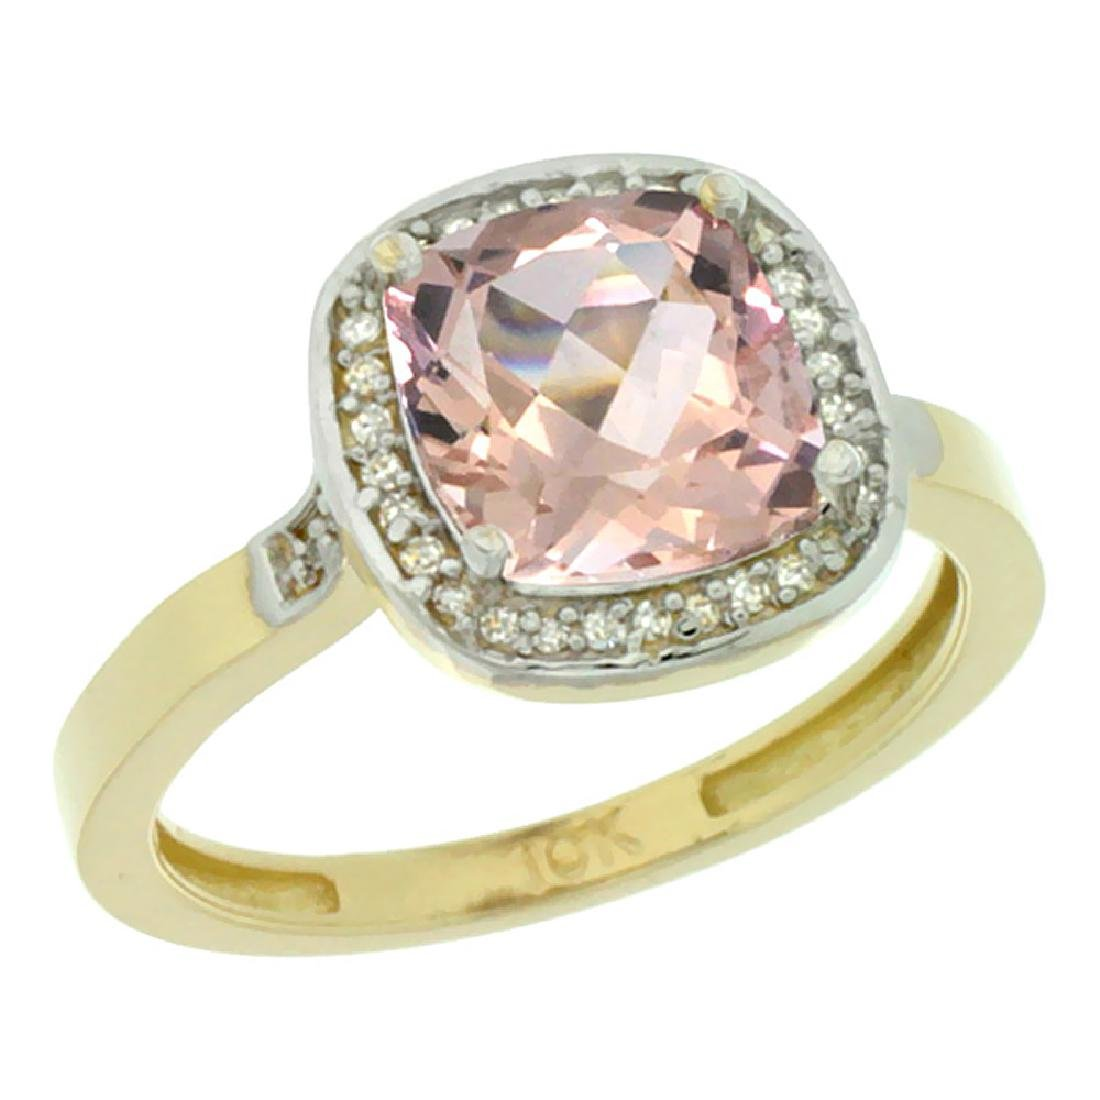 Natural 2.11 ctw Morganite & Diamond Engagement Ring